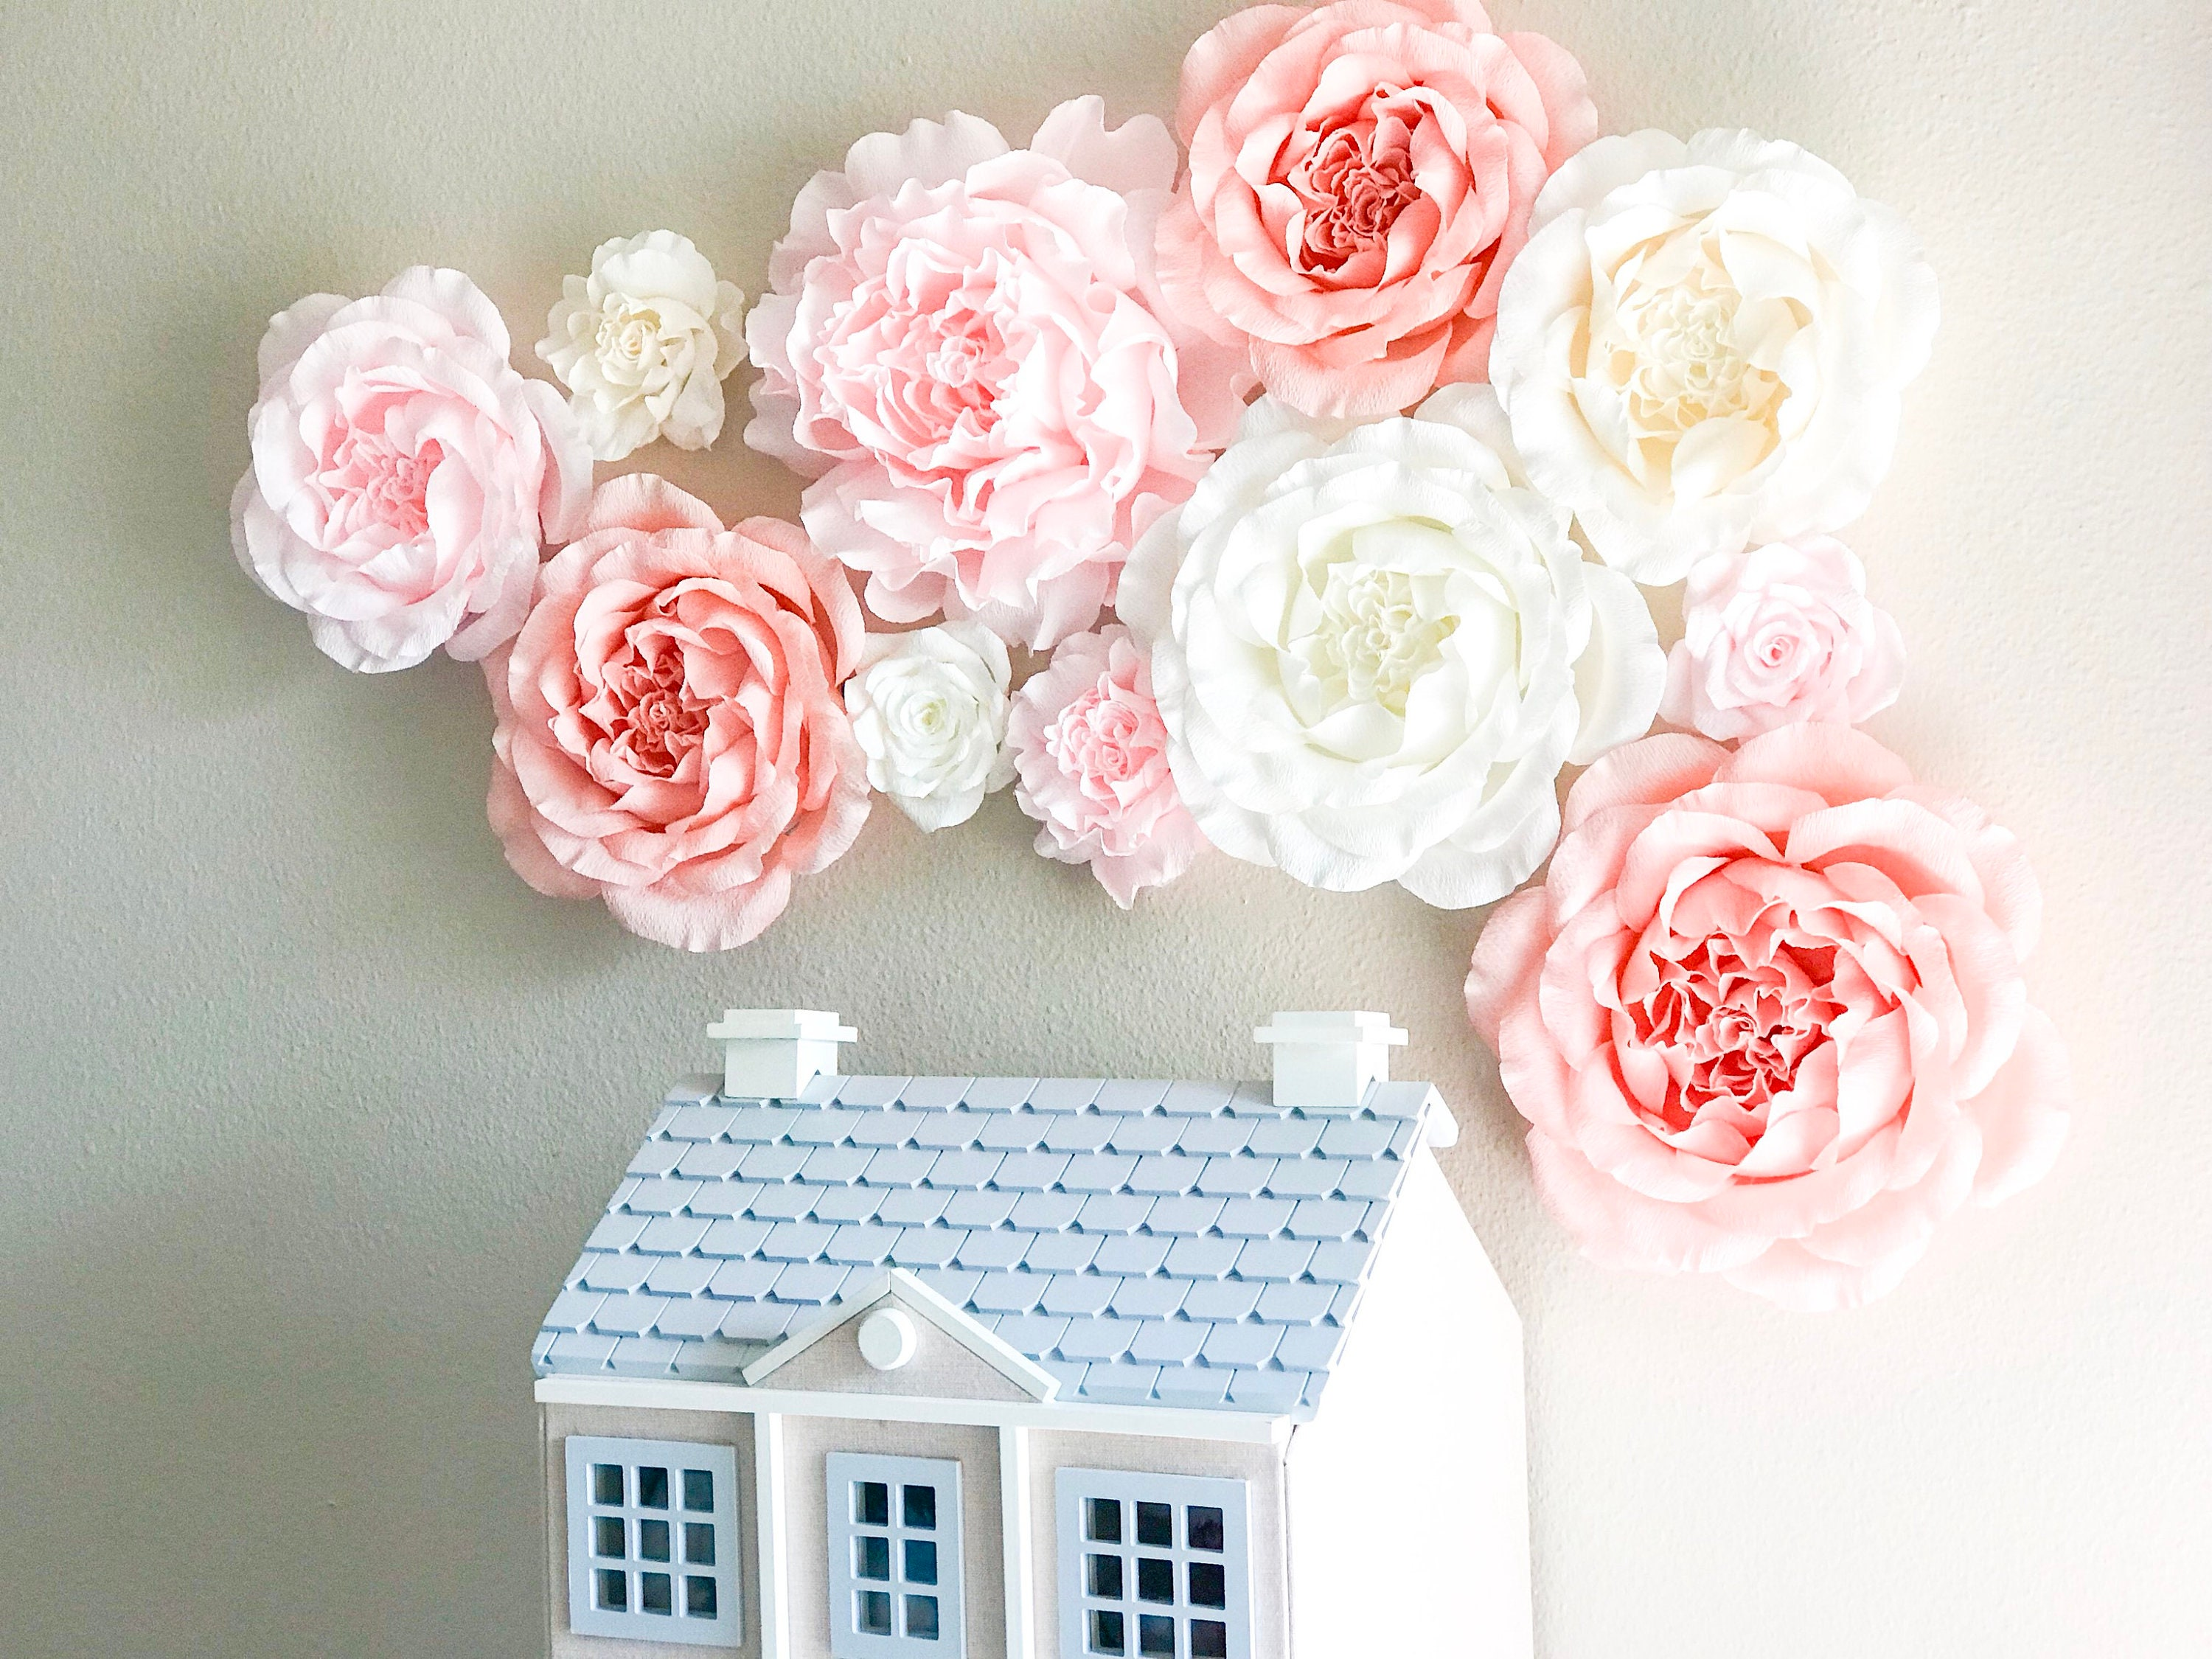 Paper Flower Backdrop Paper Ranunculus Paper Peonies Paper Roses Nursery Wall Flowers Girl S Room Decor Floral Nursery Dollhouse Decor